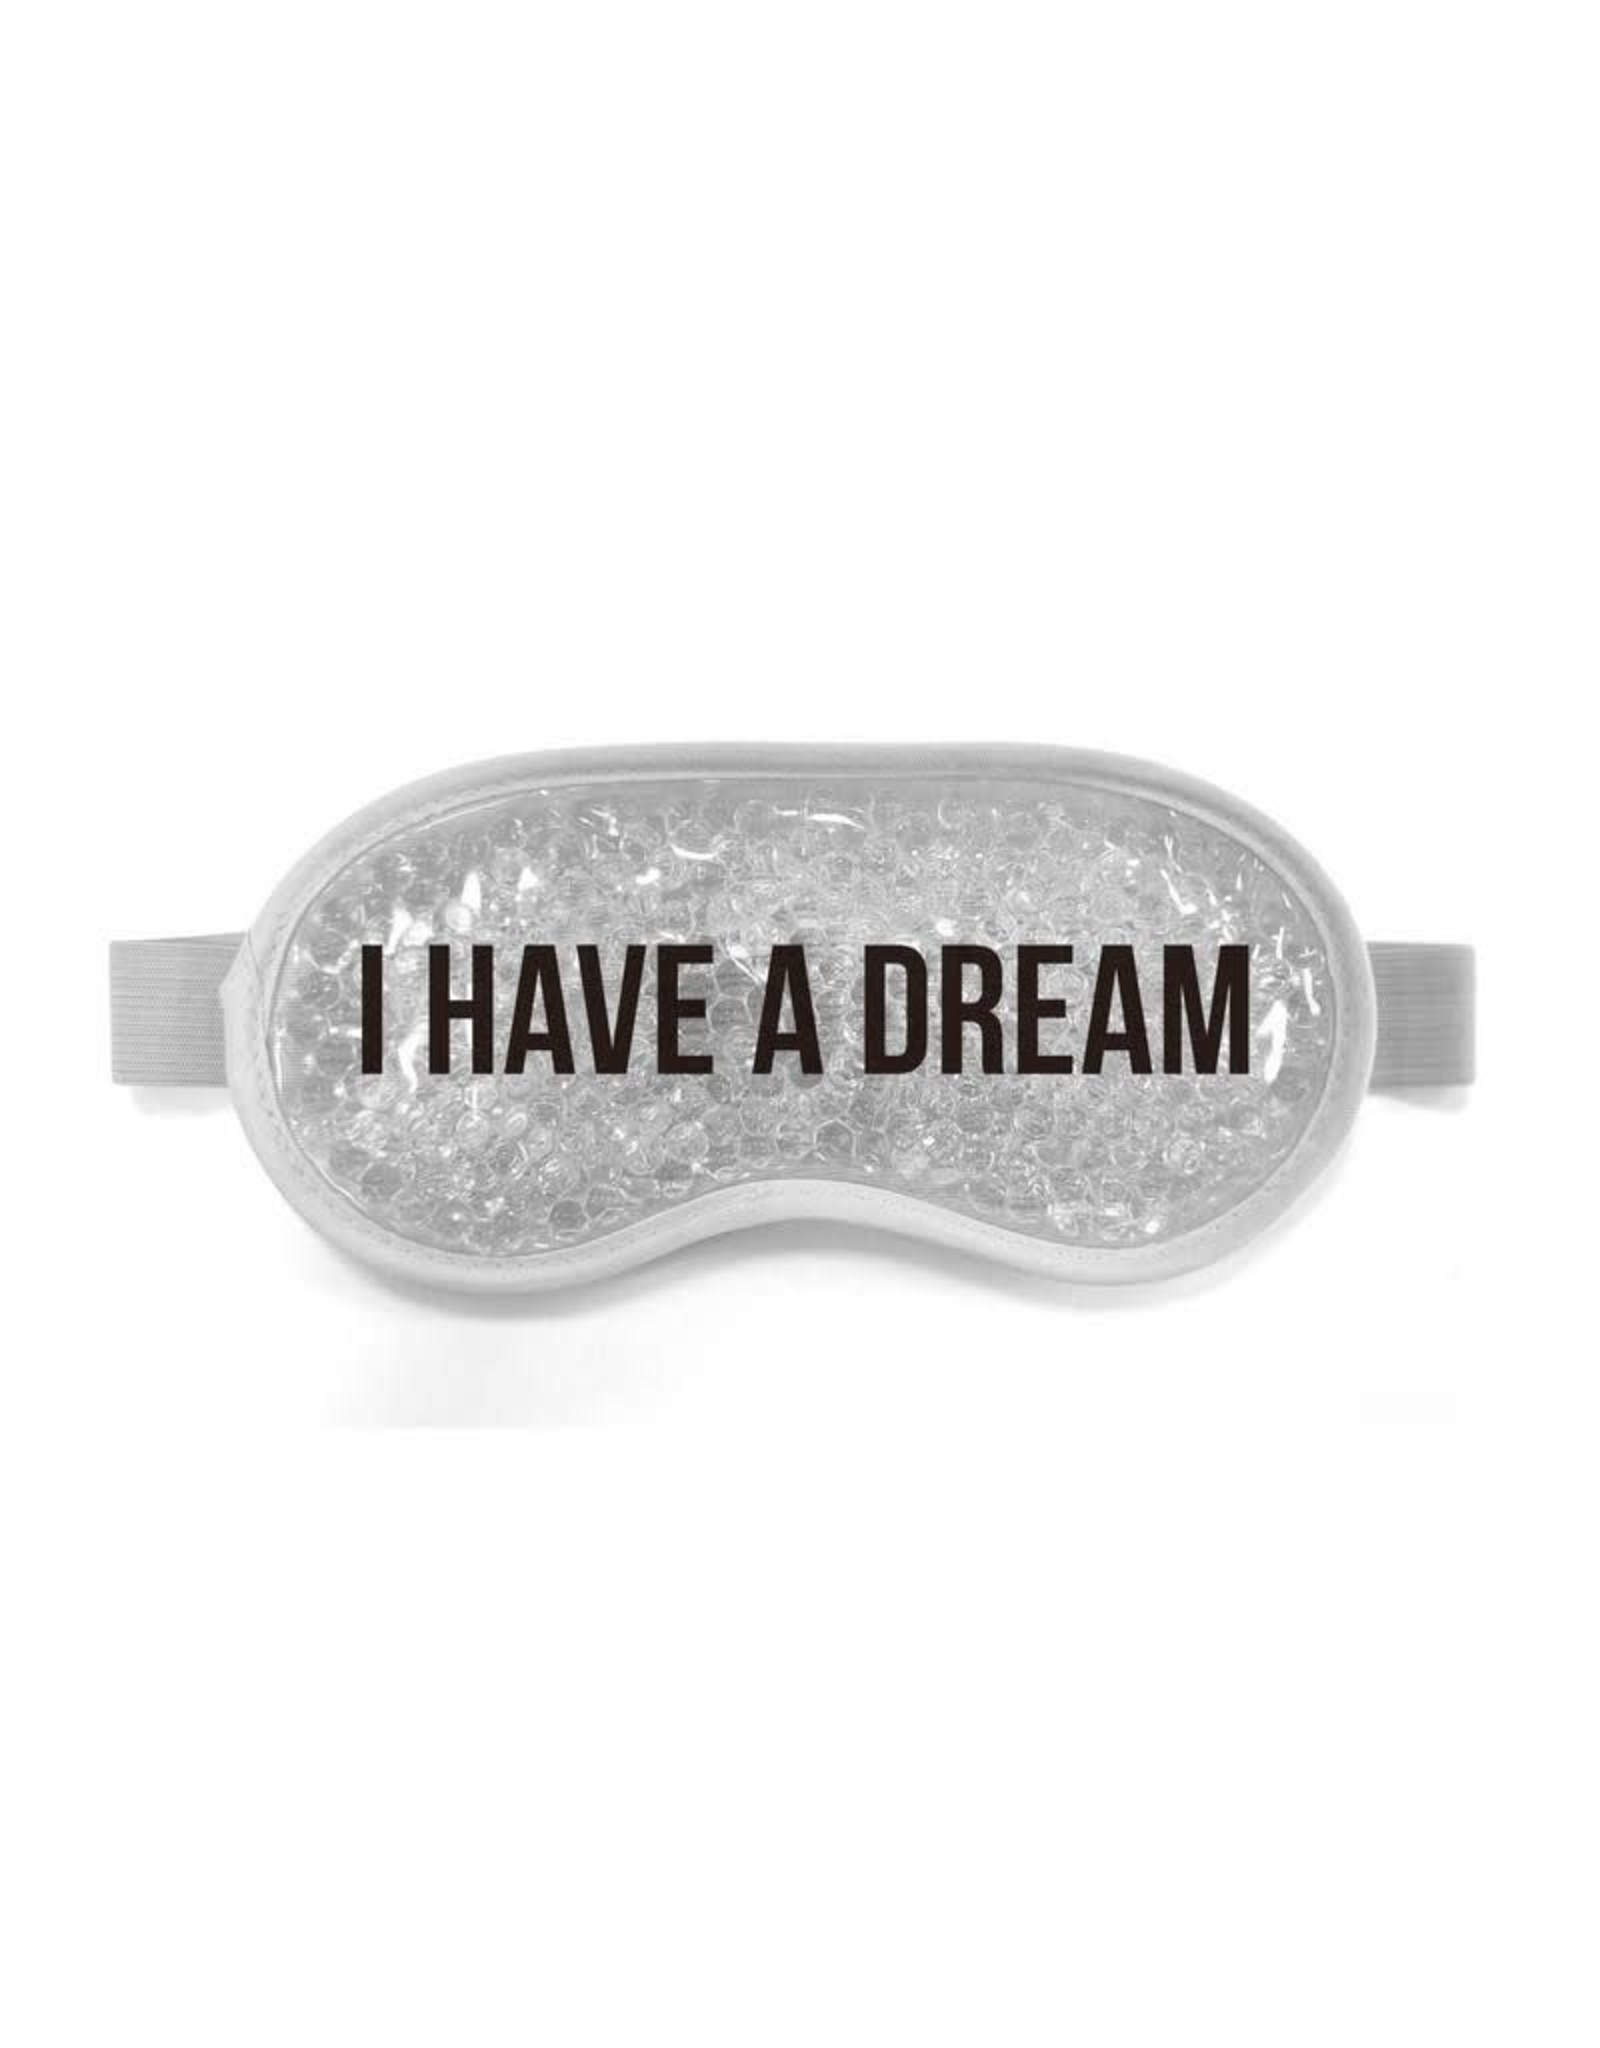 eye mask with gel and text 'I have a dream'